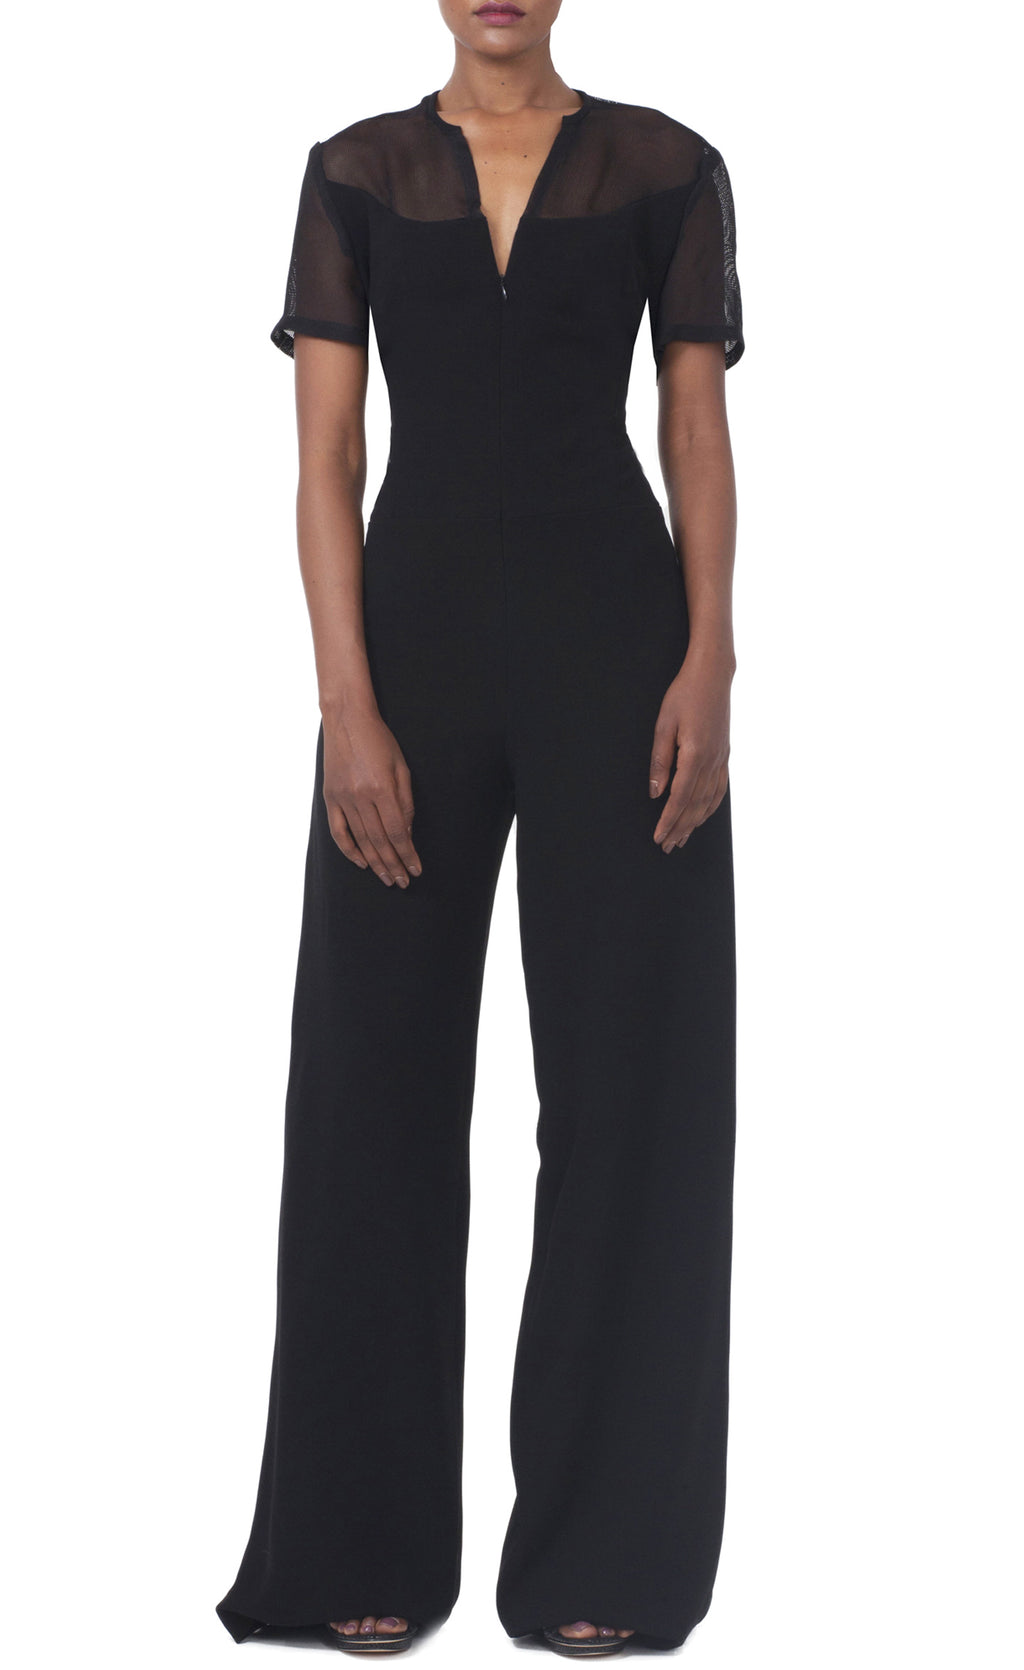 Black Full Leg Jumpsuit with Semi-sheer top back